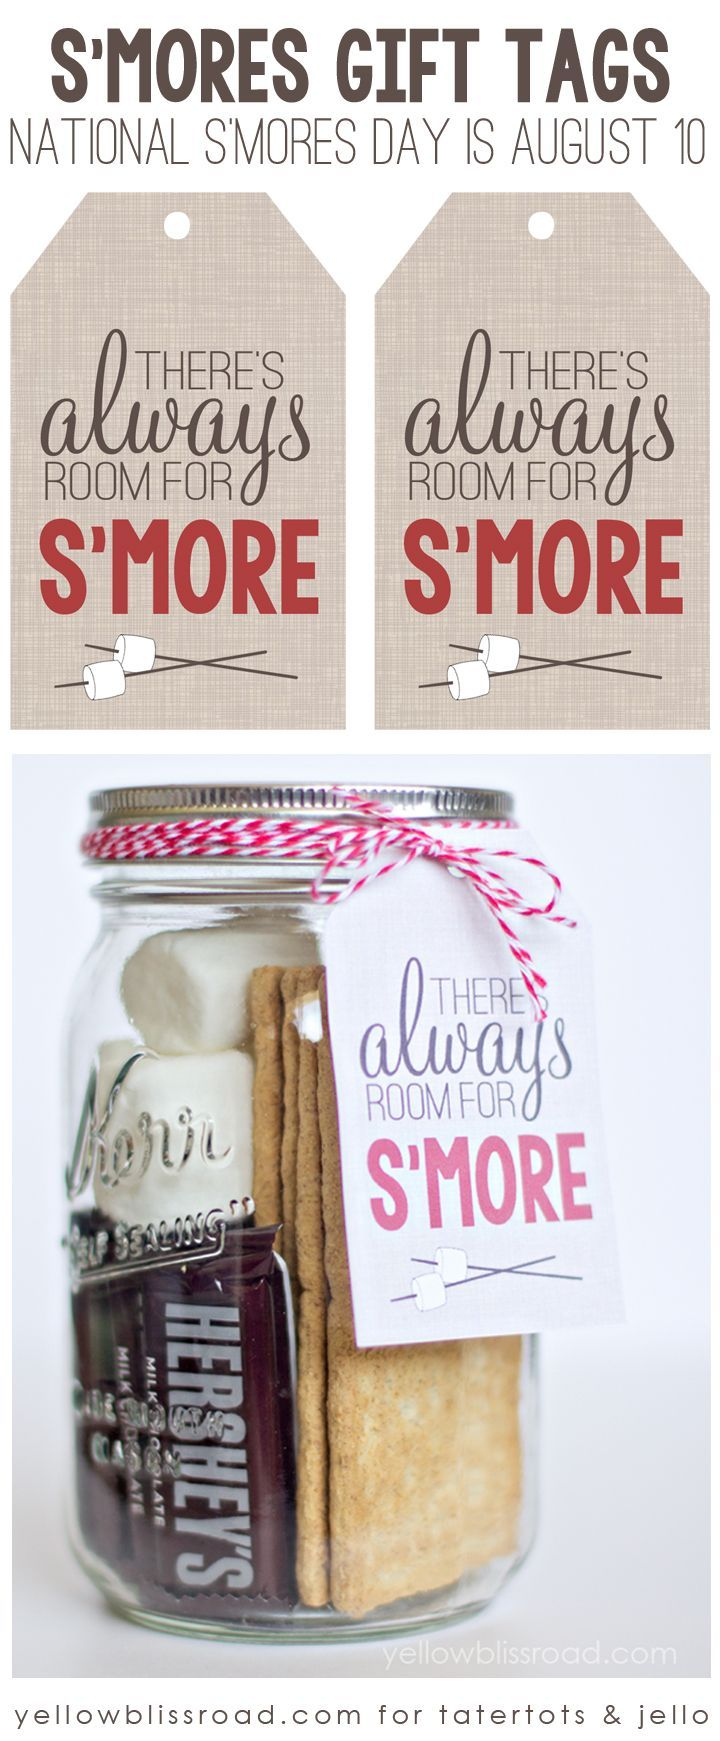 """""""There's Always Room for S'More"""" free printable graphic. Perfect for National S'Mores Day August 10!"""